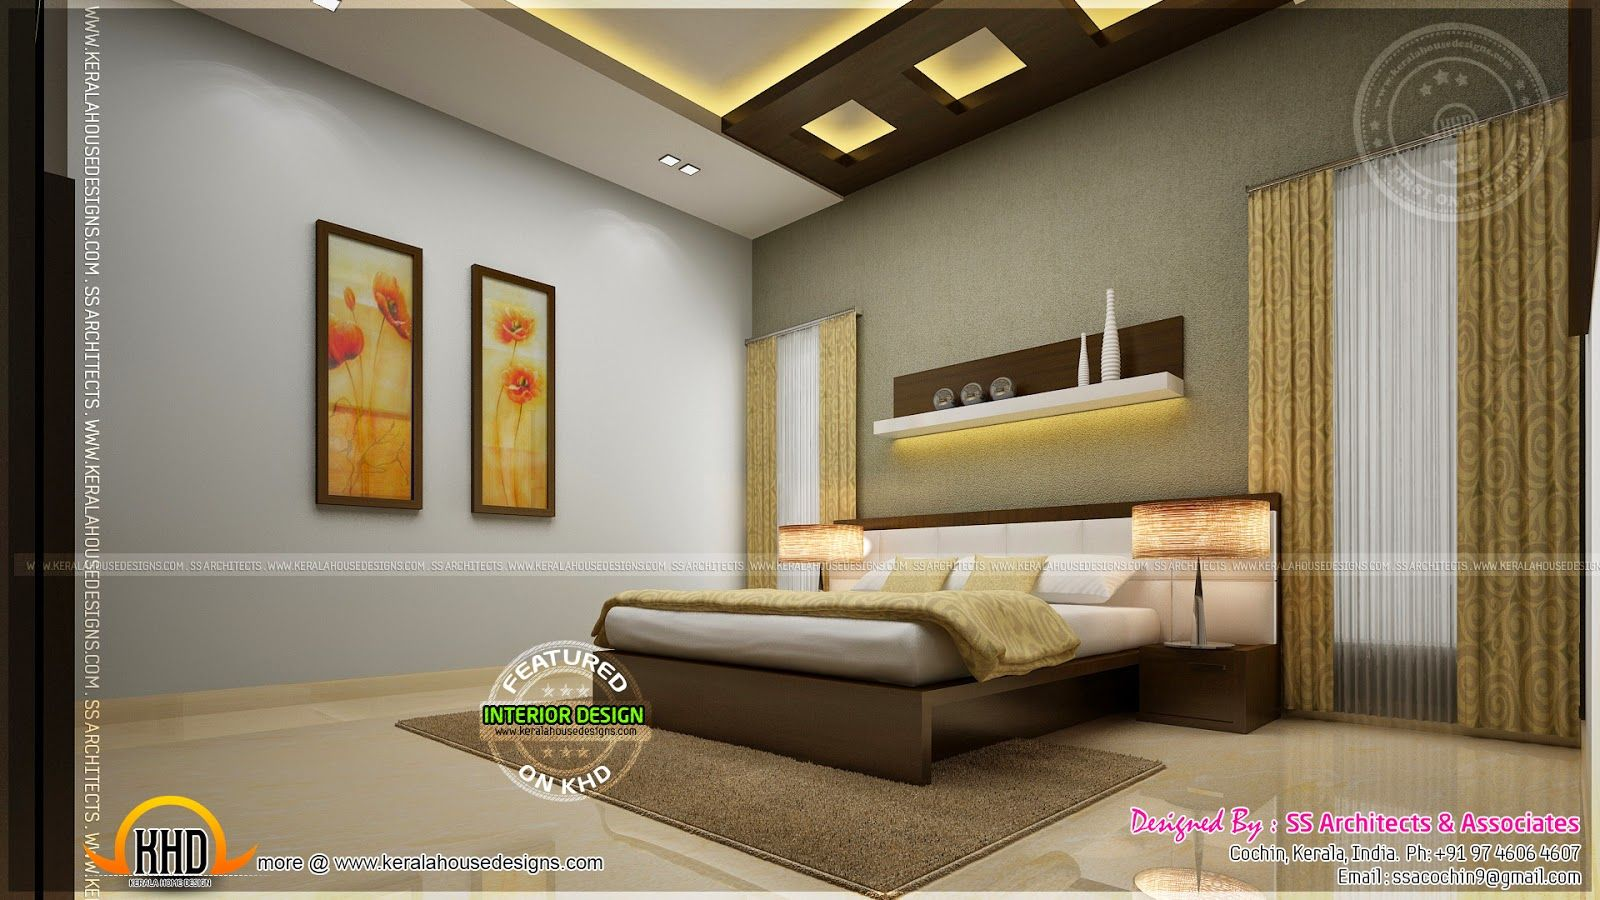 Indian master bedroom interior design google search for Bedroom interior furniture